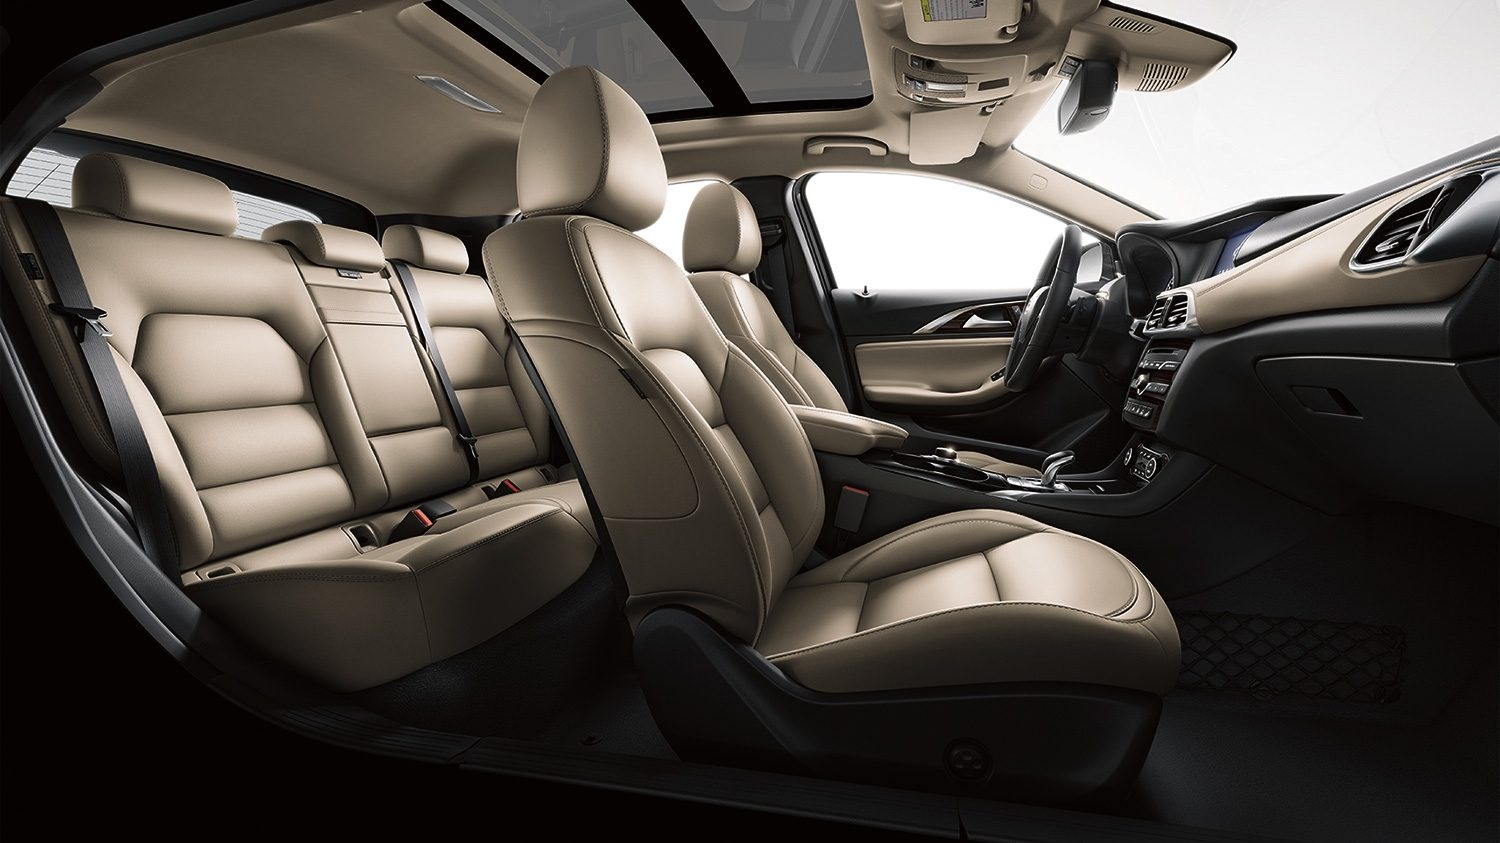 Luxury beige leather seats in car interior